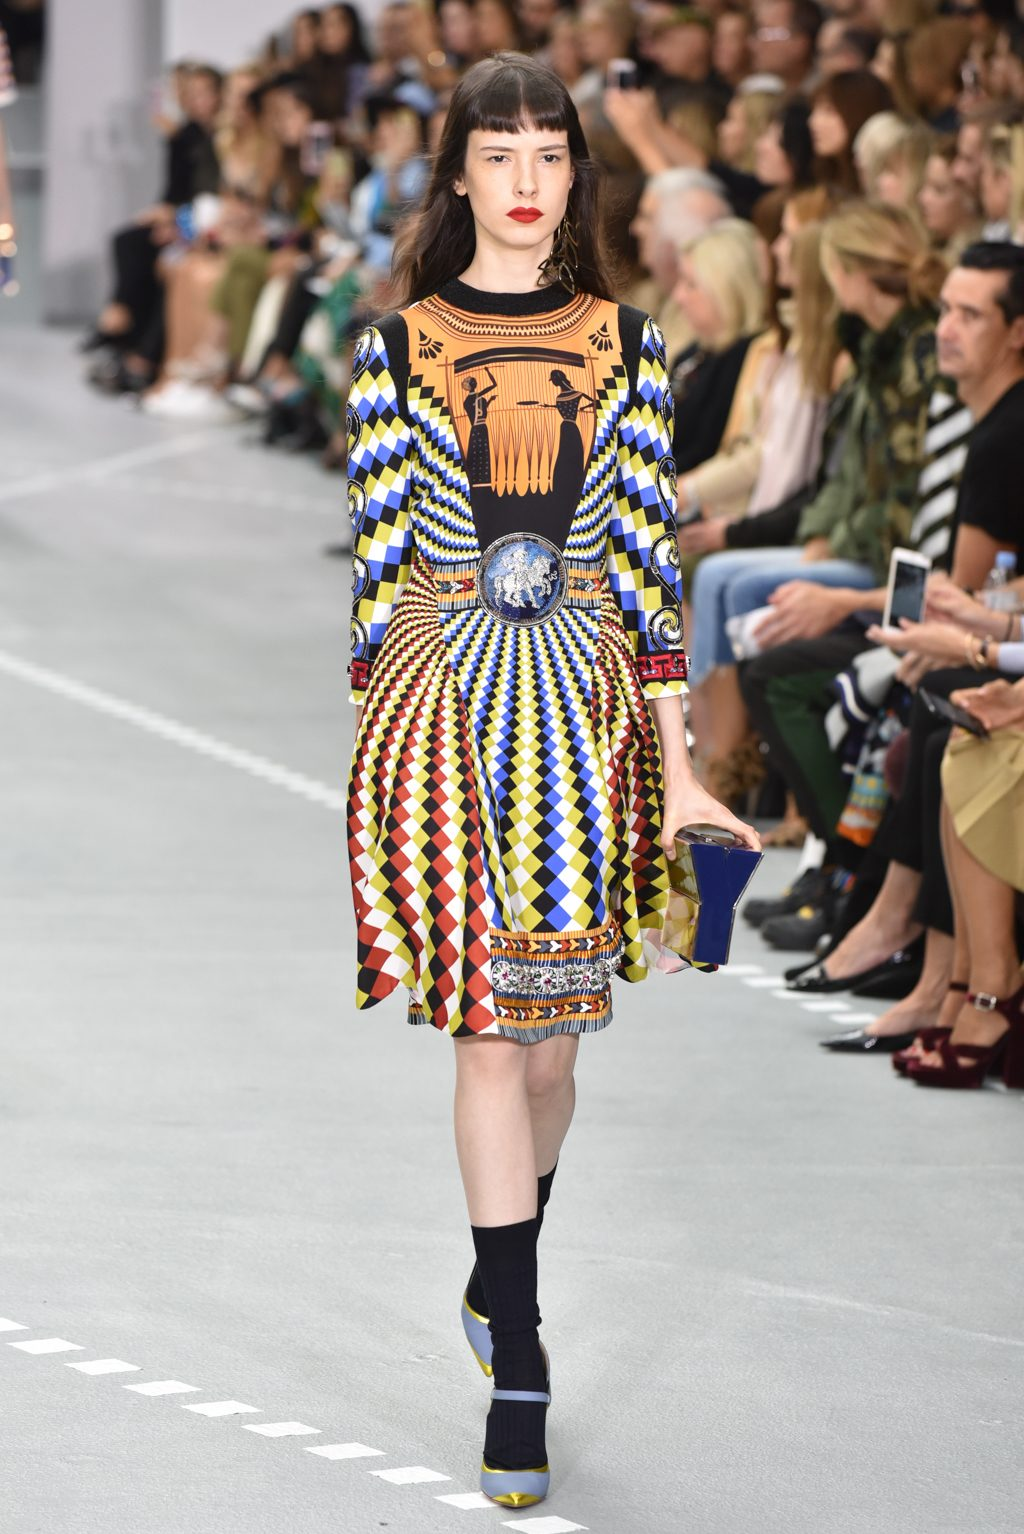 LFW-SS17-Mary-Katrantzou-Krisztian-Pinter-the-upcoming-2-1024x1534